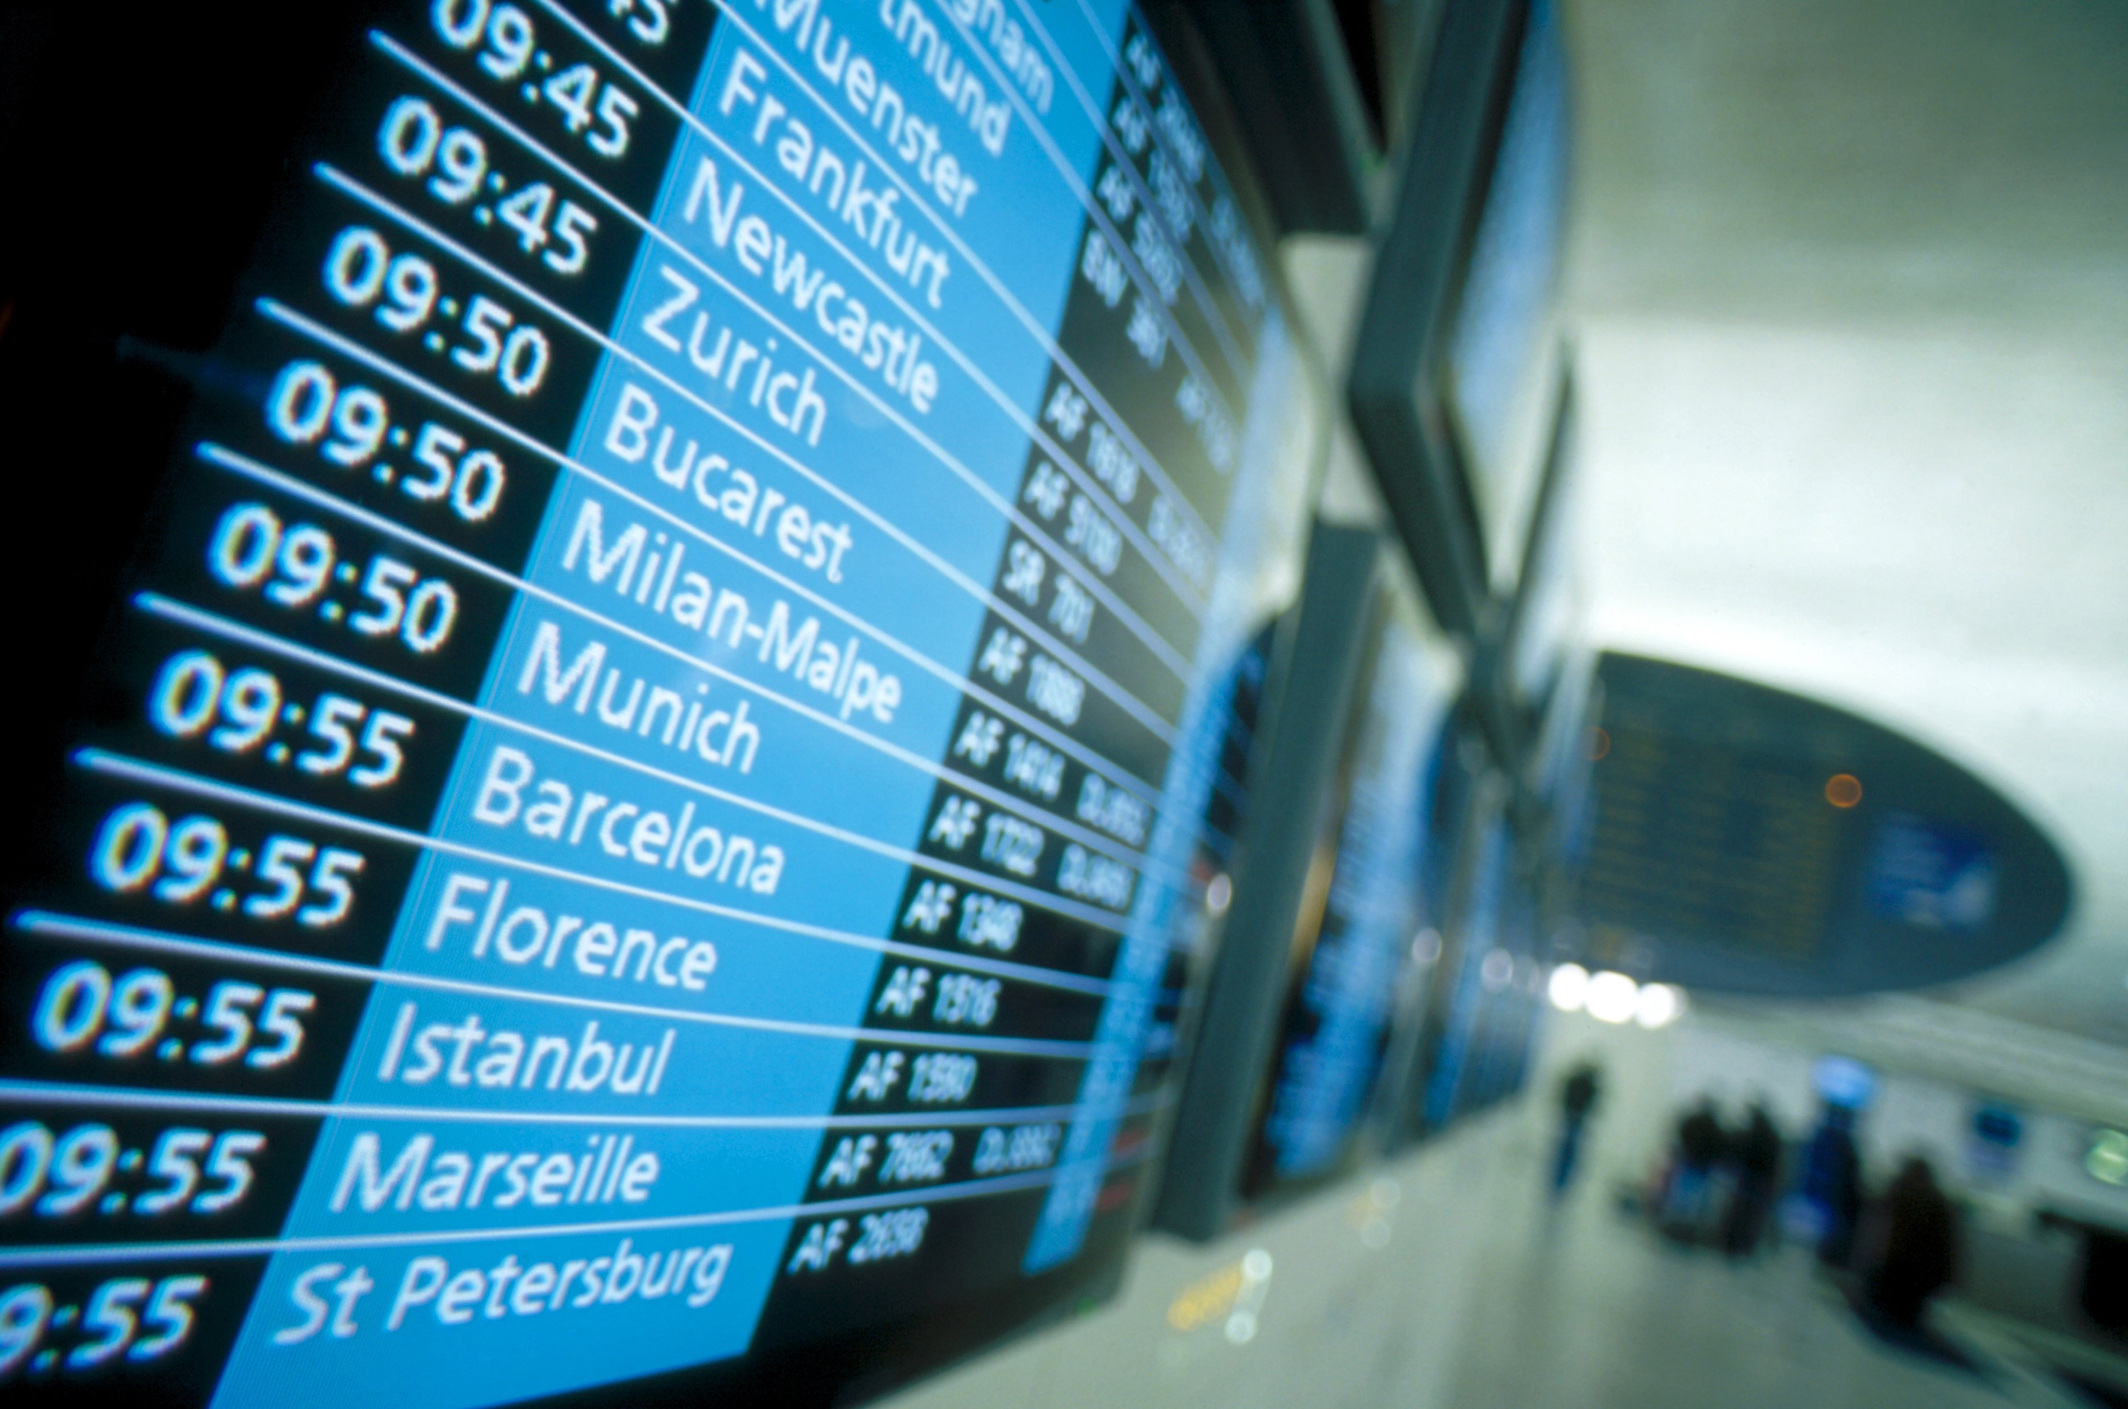 Airlines timely schedule, departure and arrival of flights, Arlanda airport, Sweden